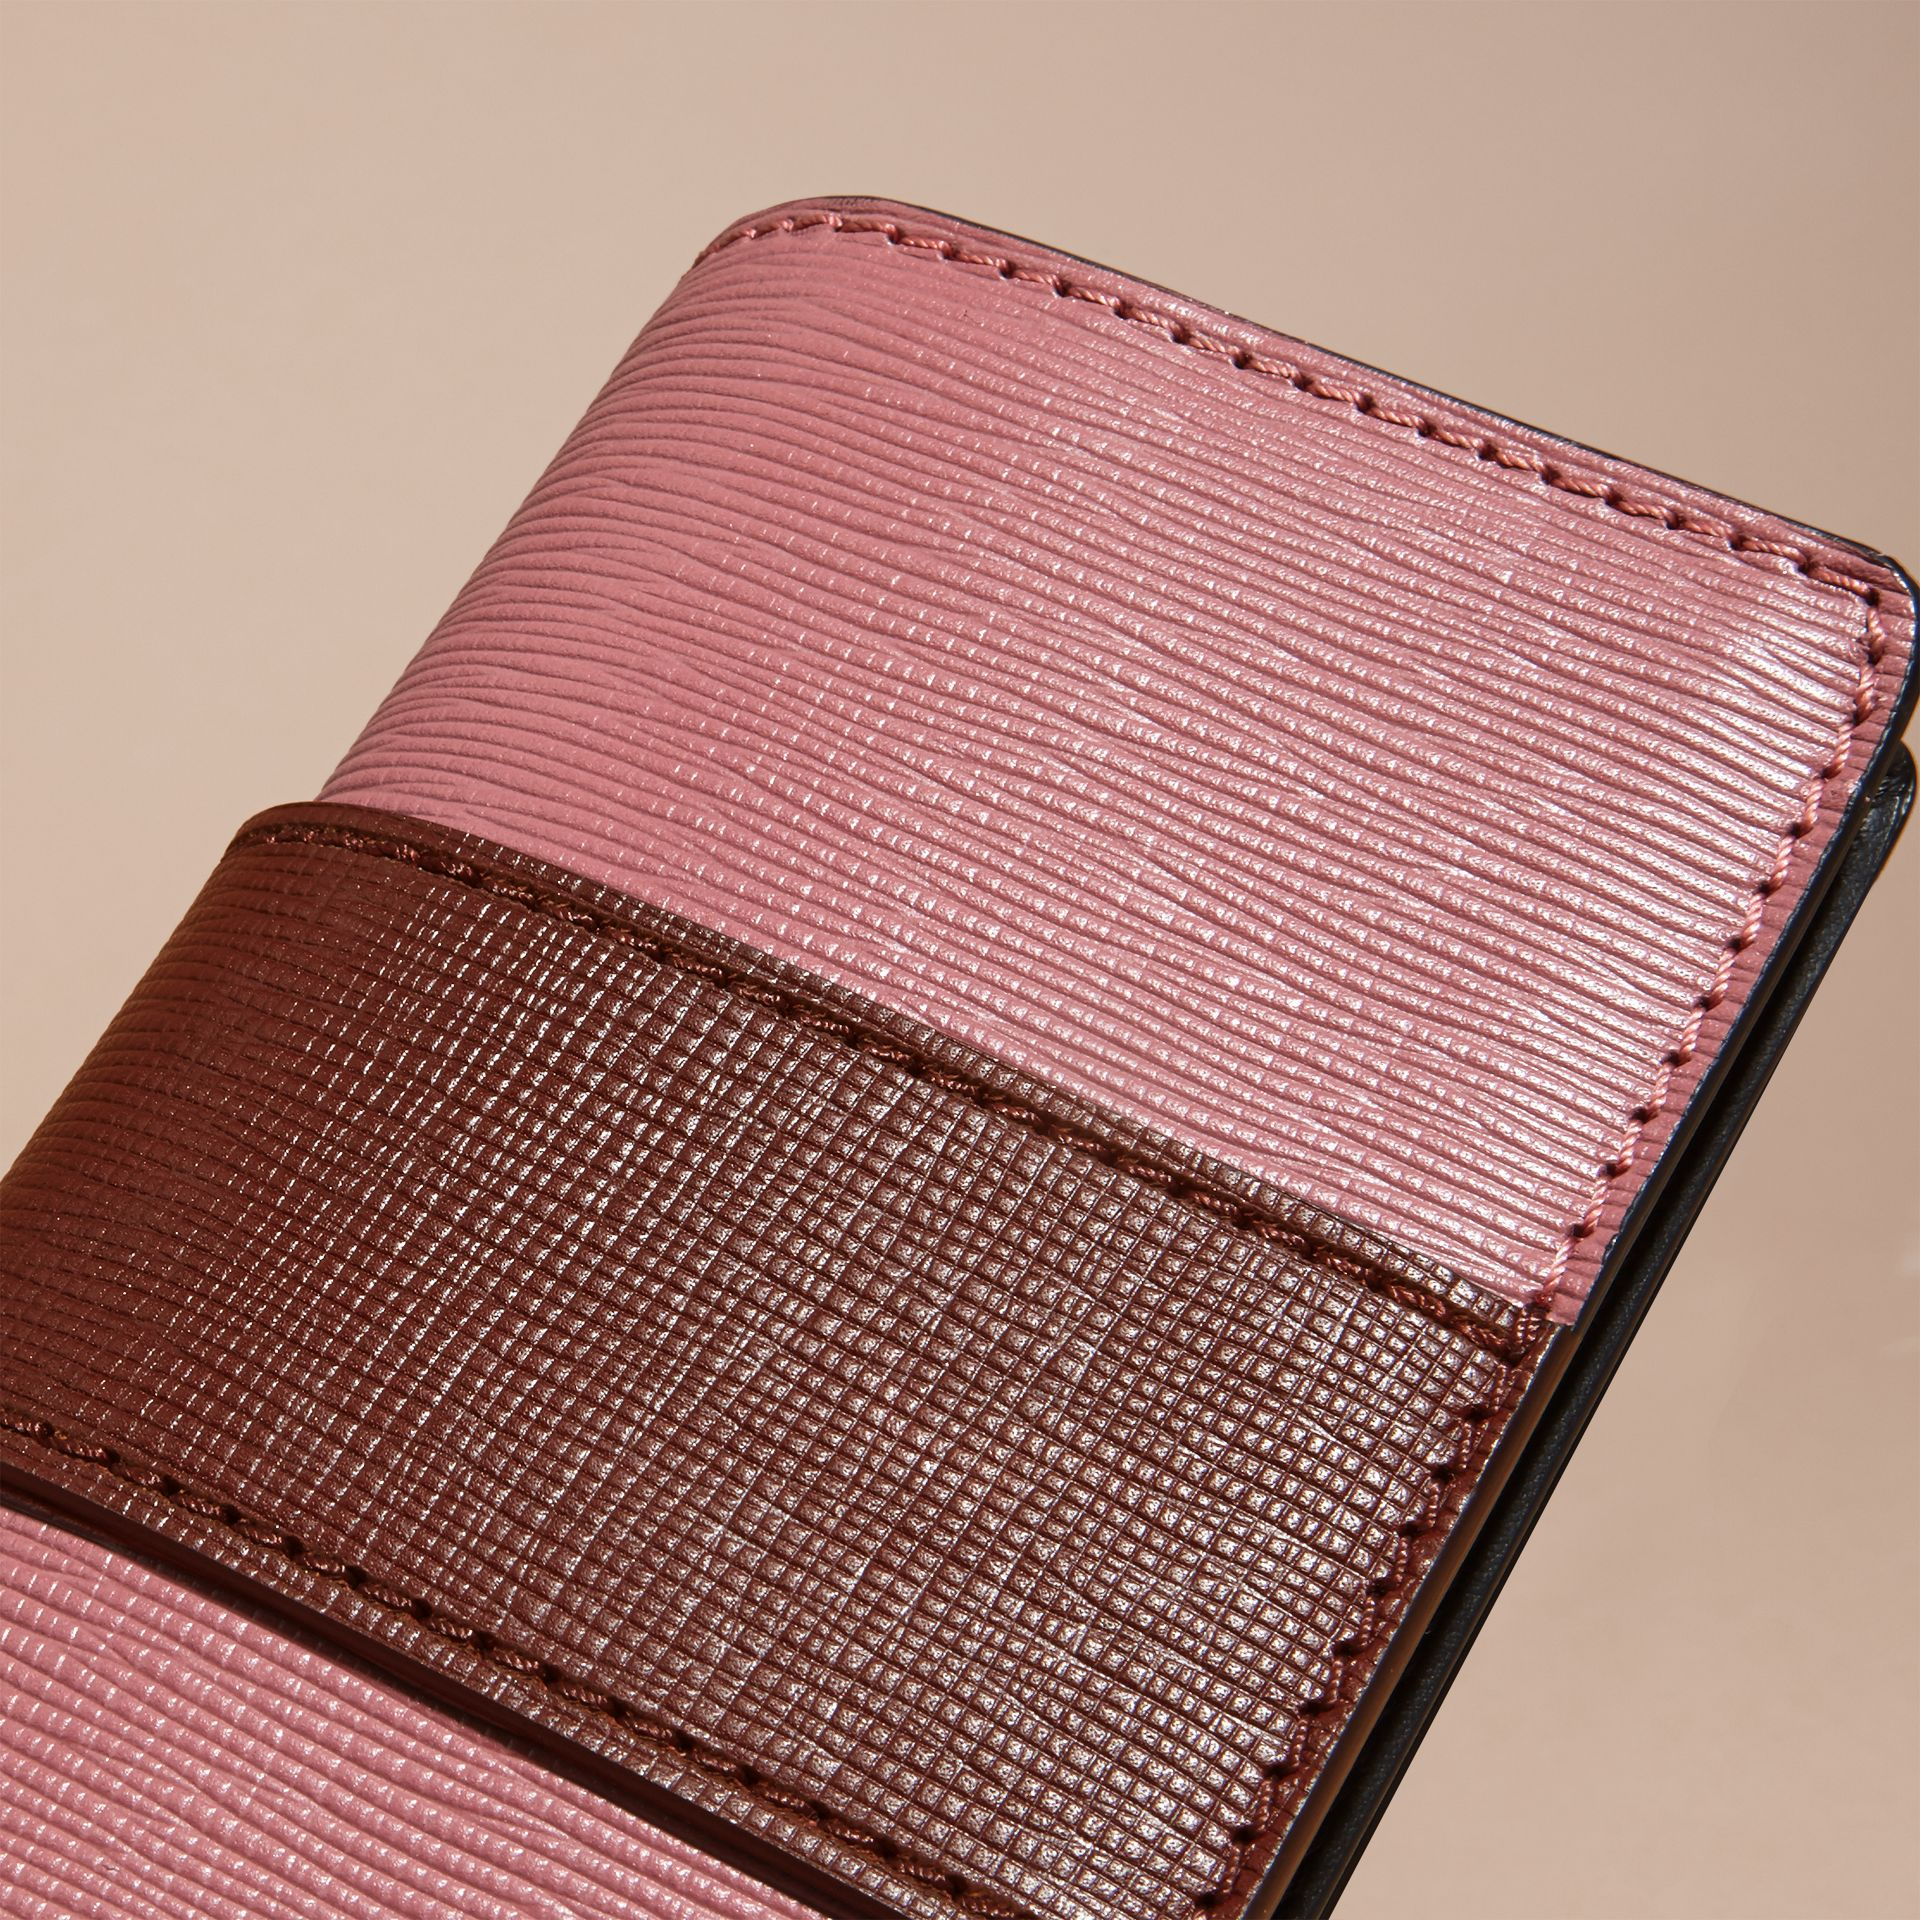 Dusky pink/ burgundy The Small Buckle Bag in Textured Leather Dusky Pink/ Burgundy - gallery image 7